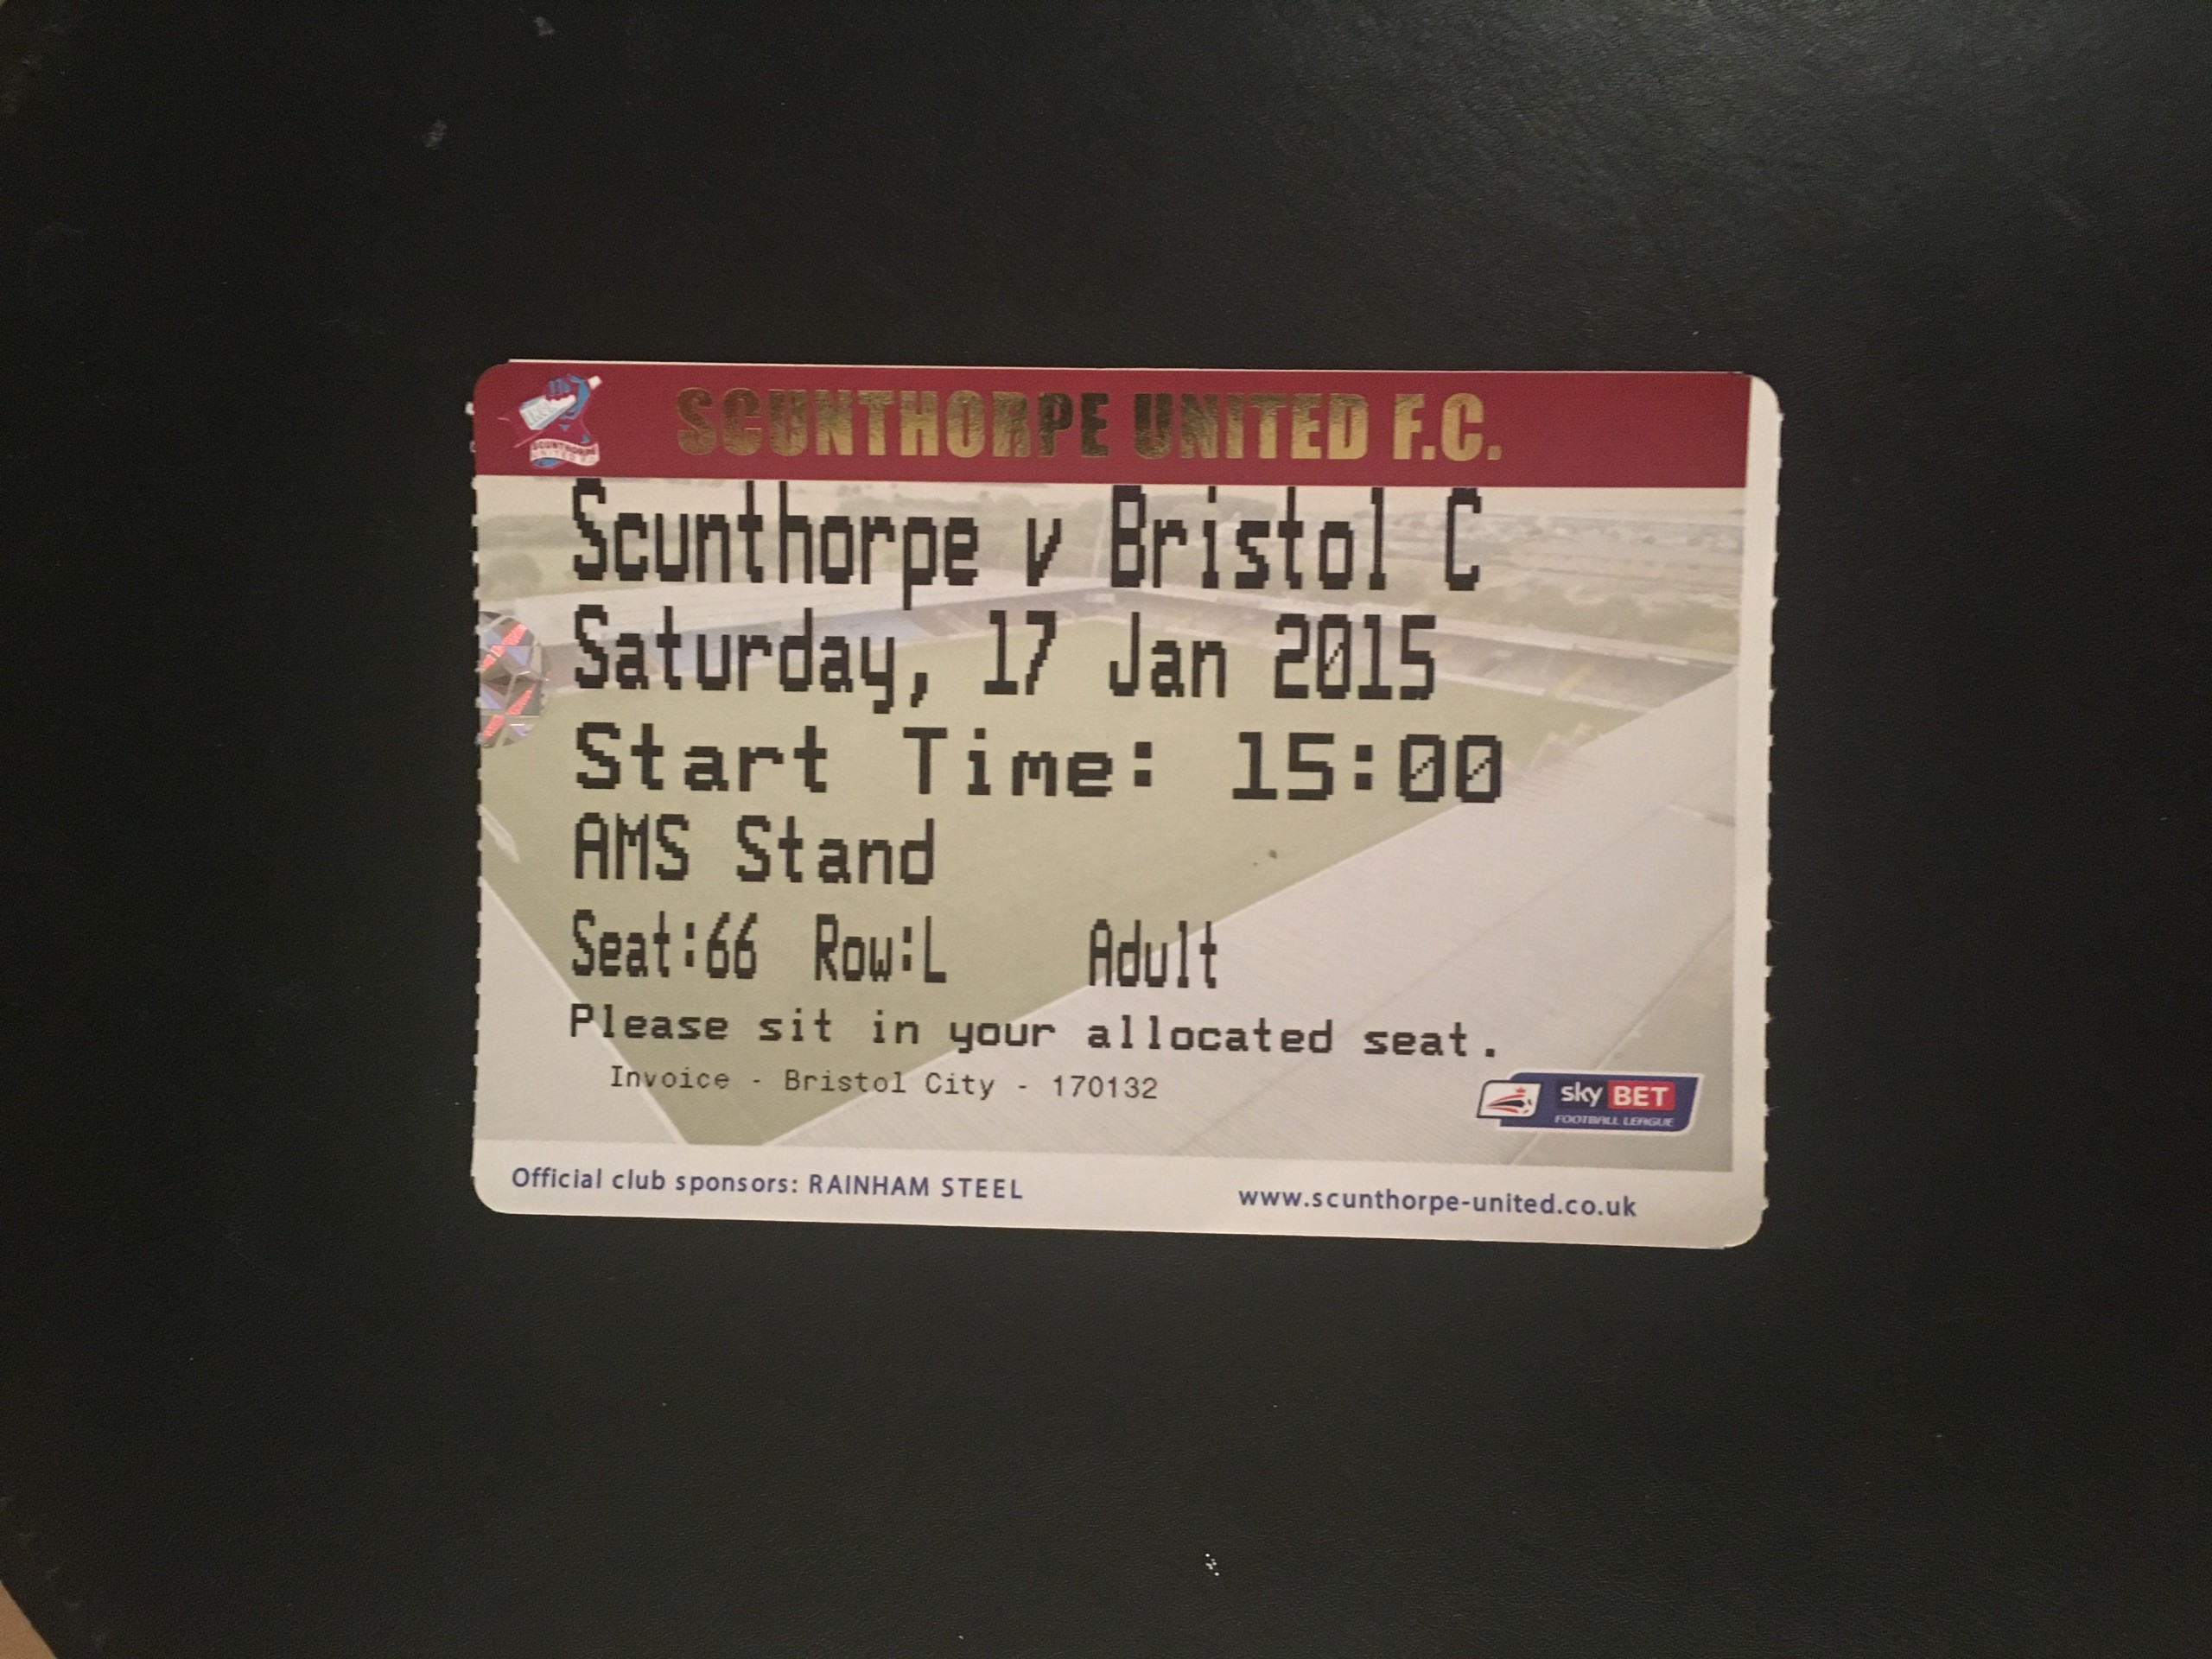 Scunthorpe United v Bristol City 17-01-2015 Ticket